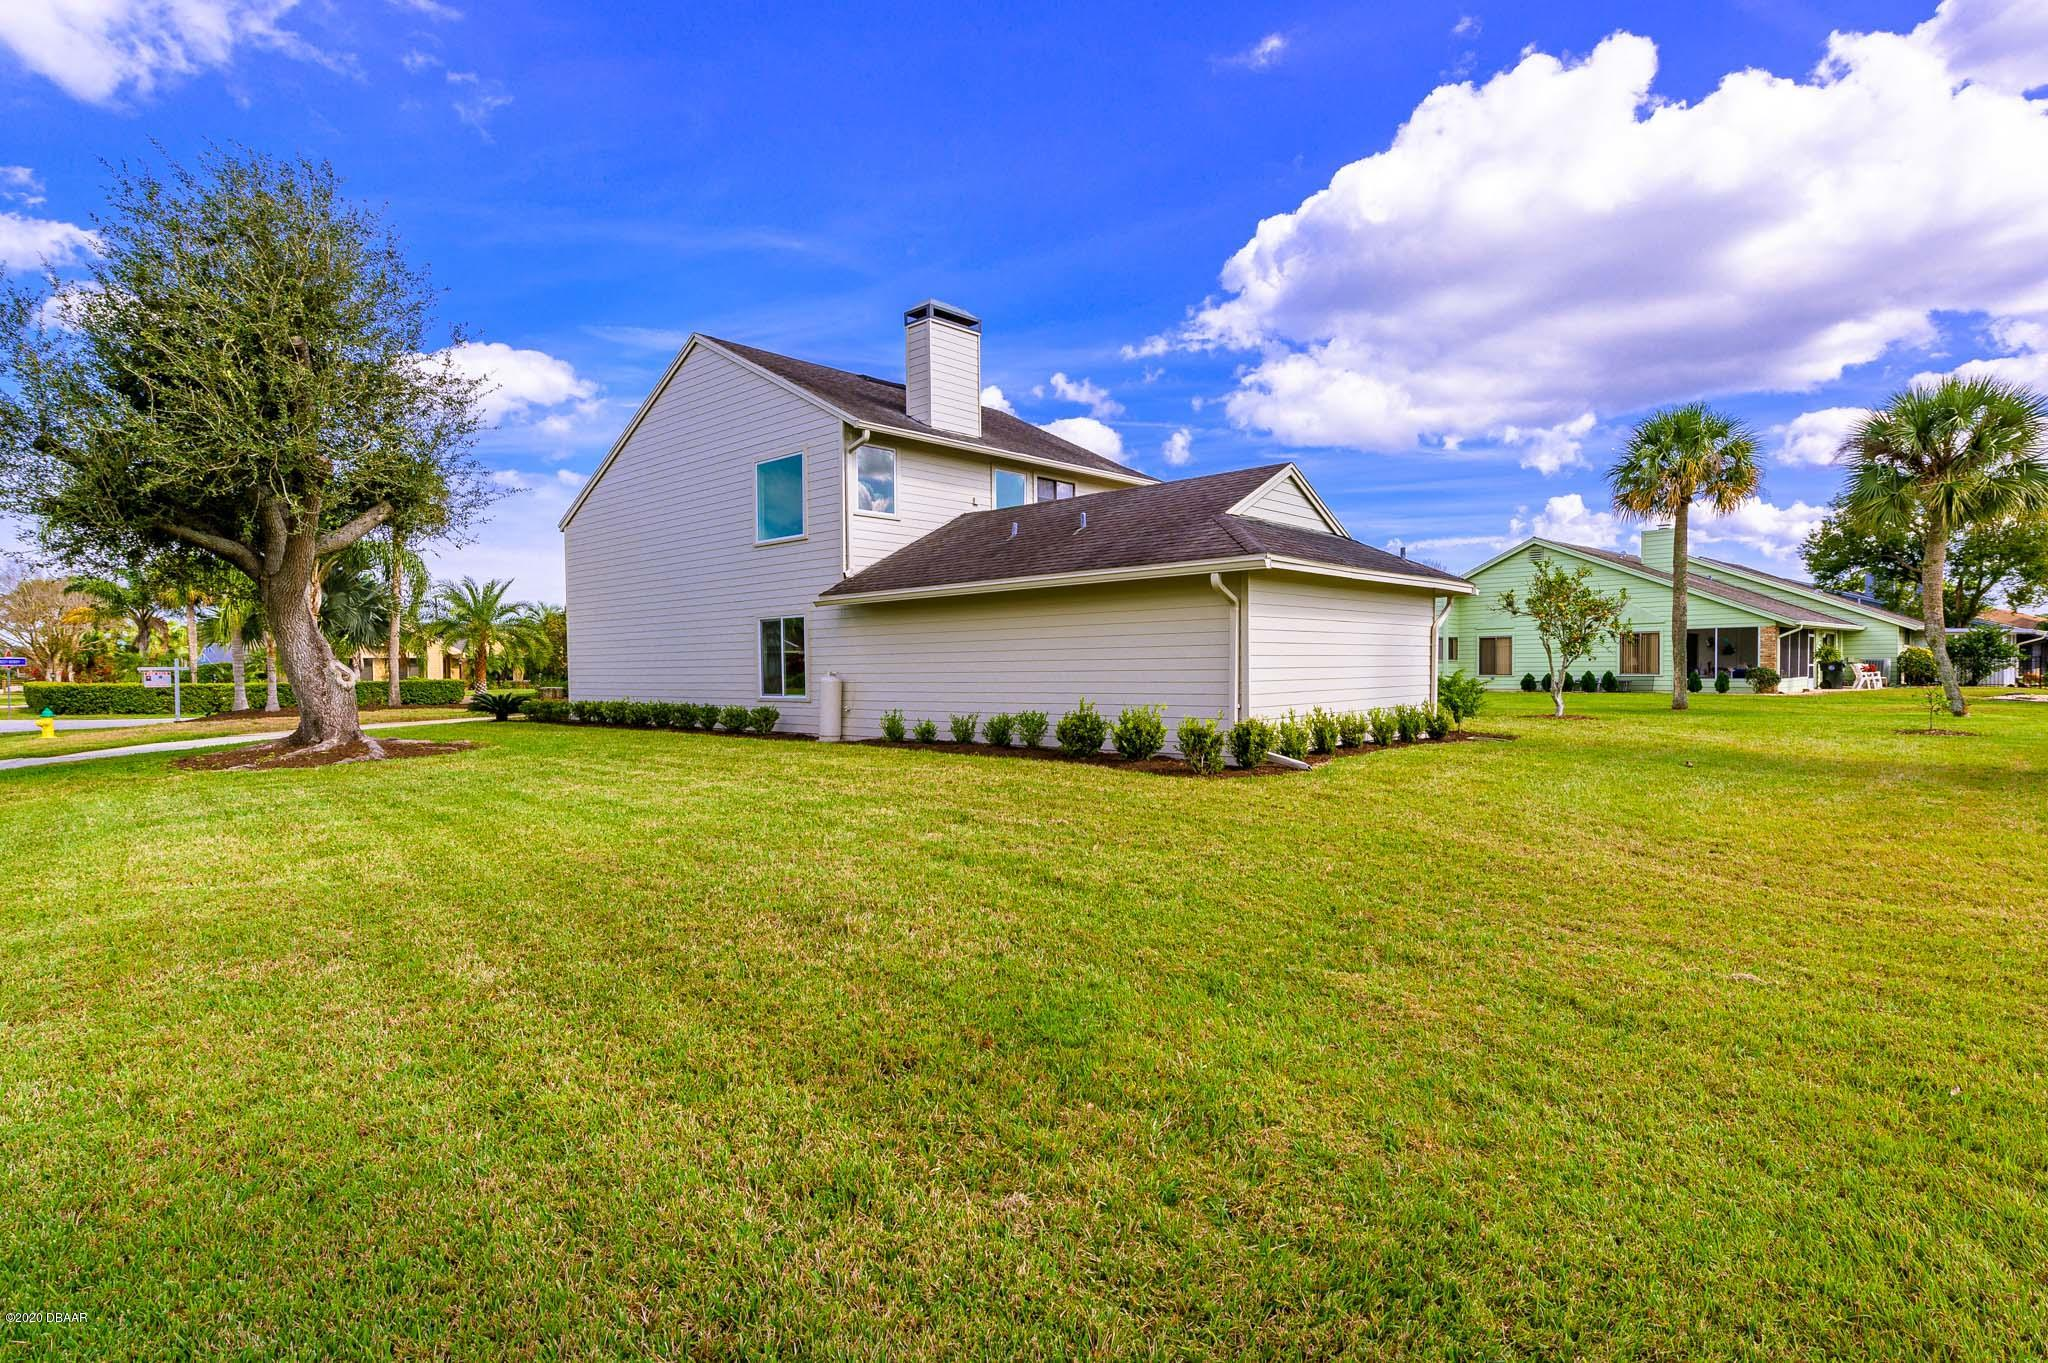 147 Green Heron Daytona Beach - 4